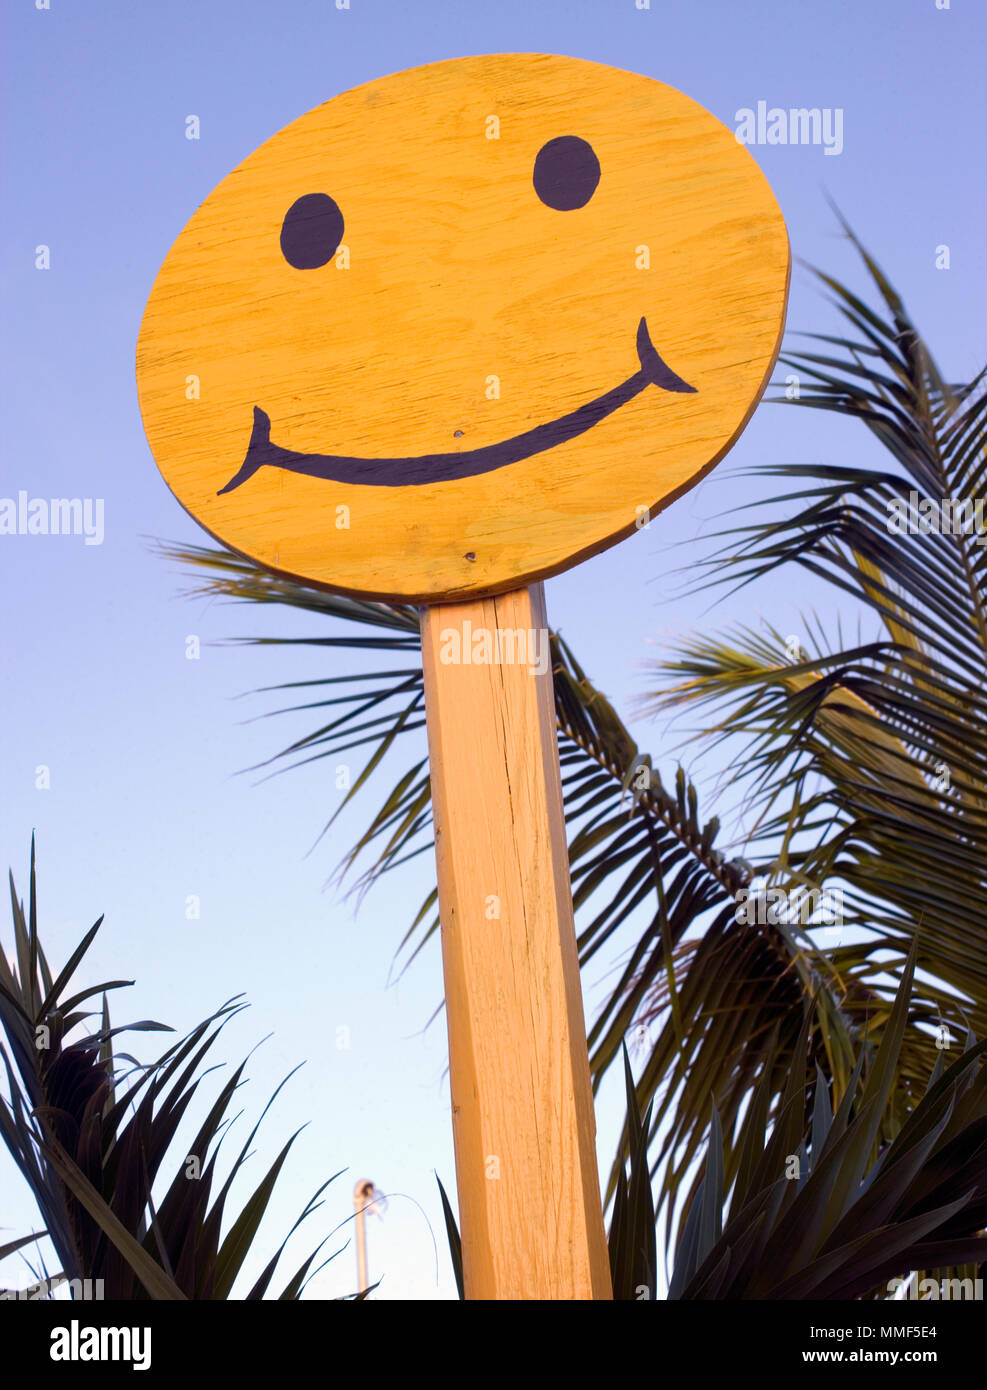 Plywood happy face sign with palm trees in the Bahamas Stock Photo